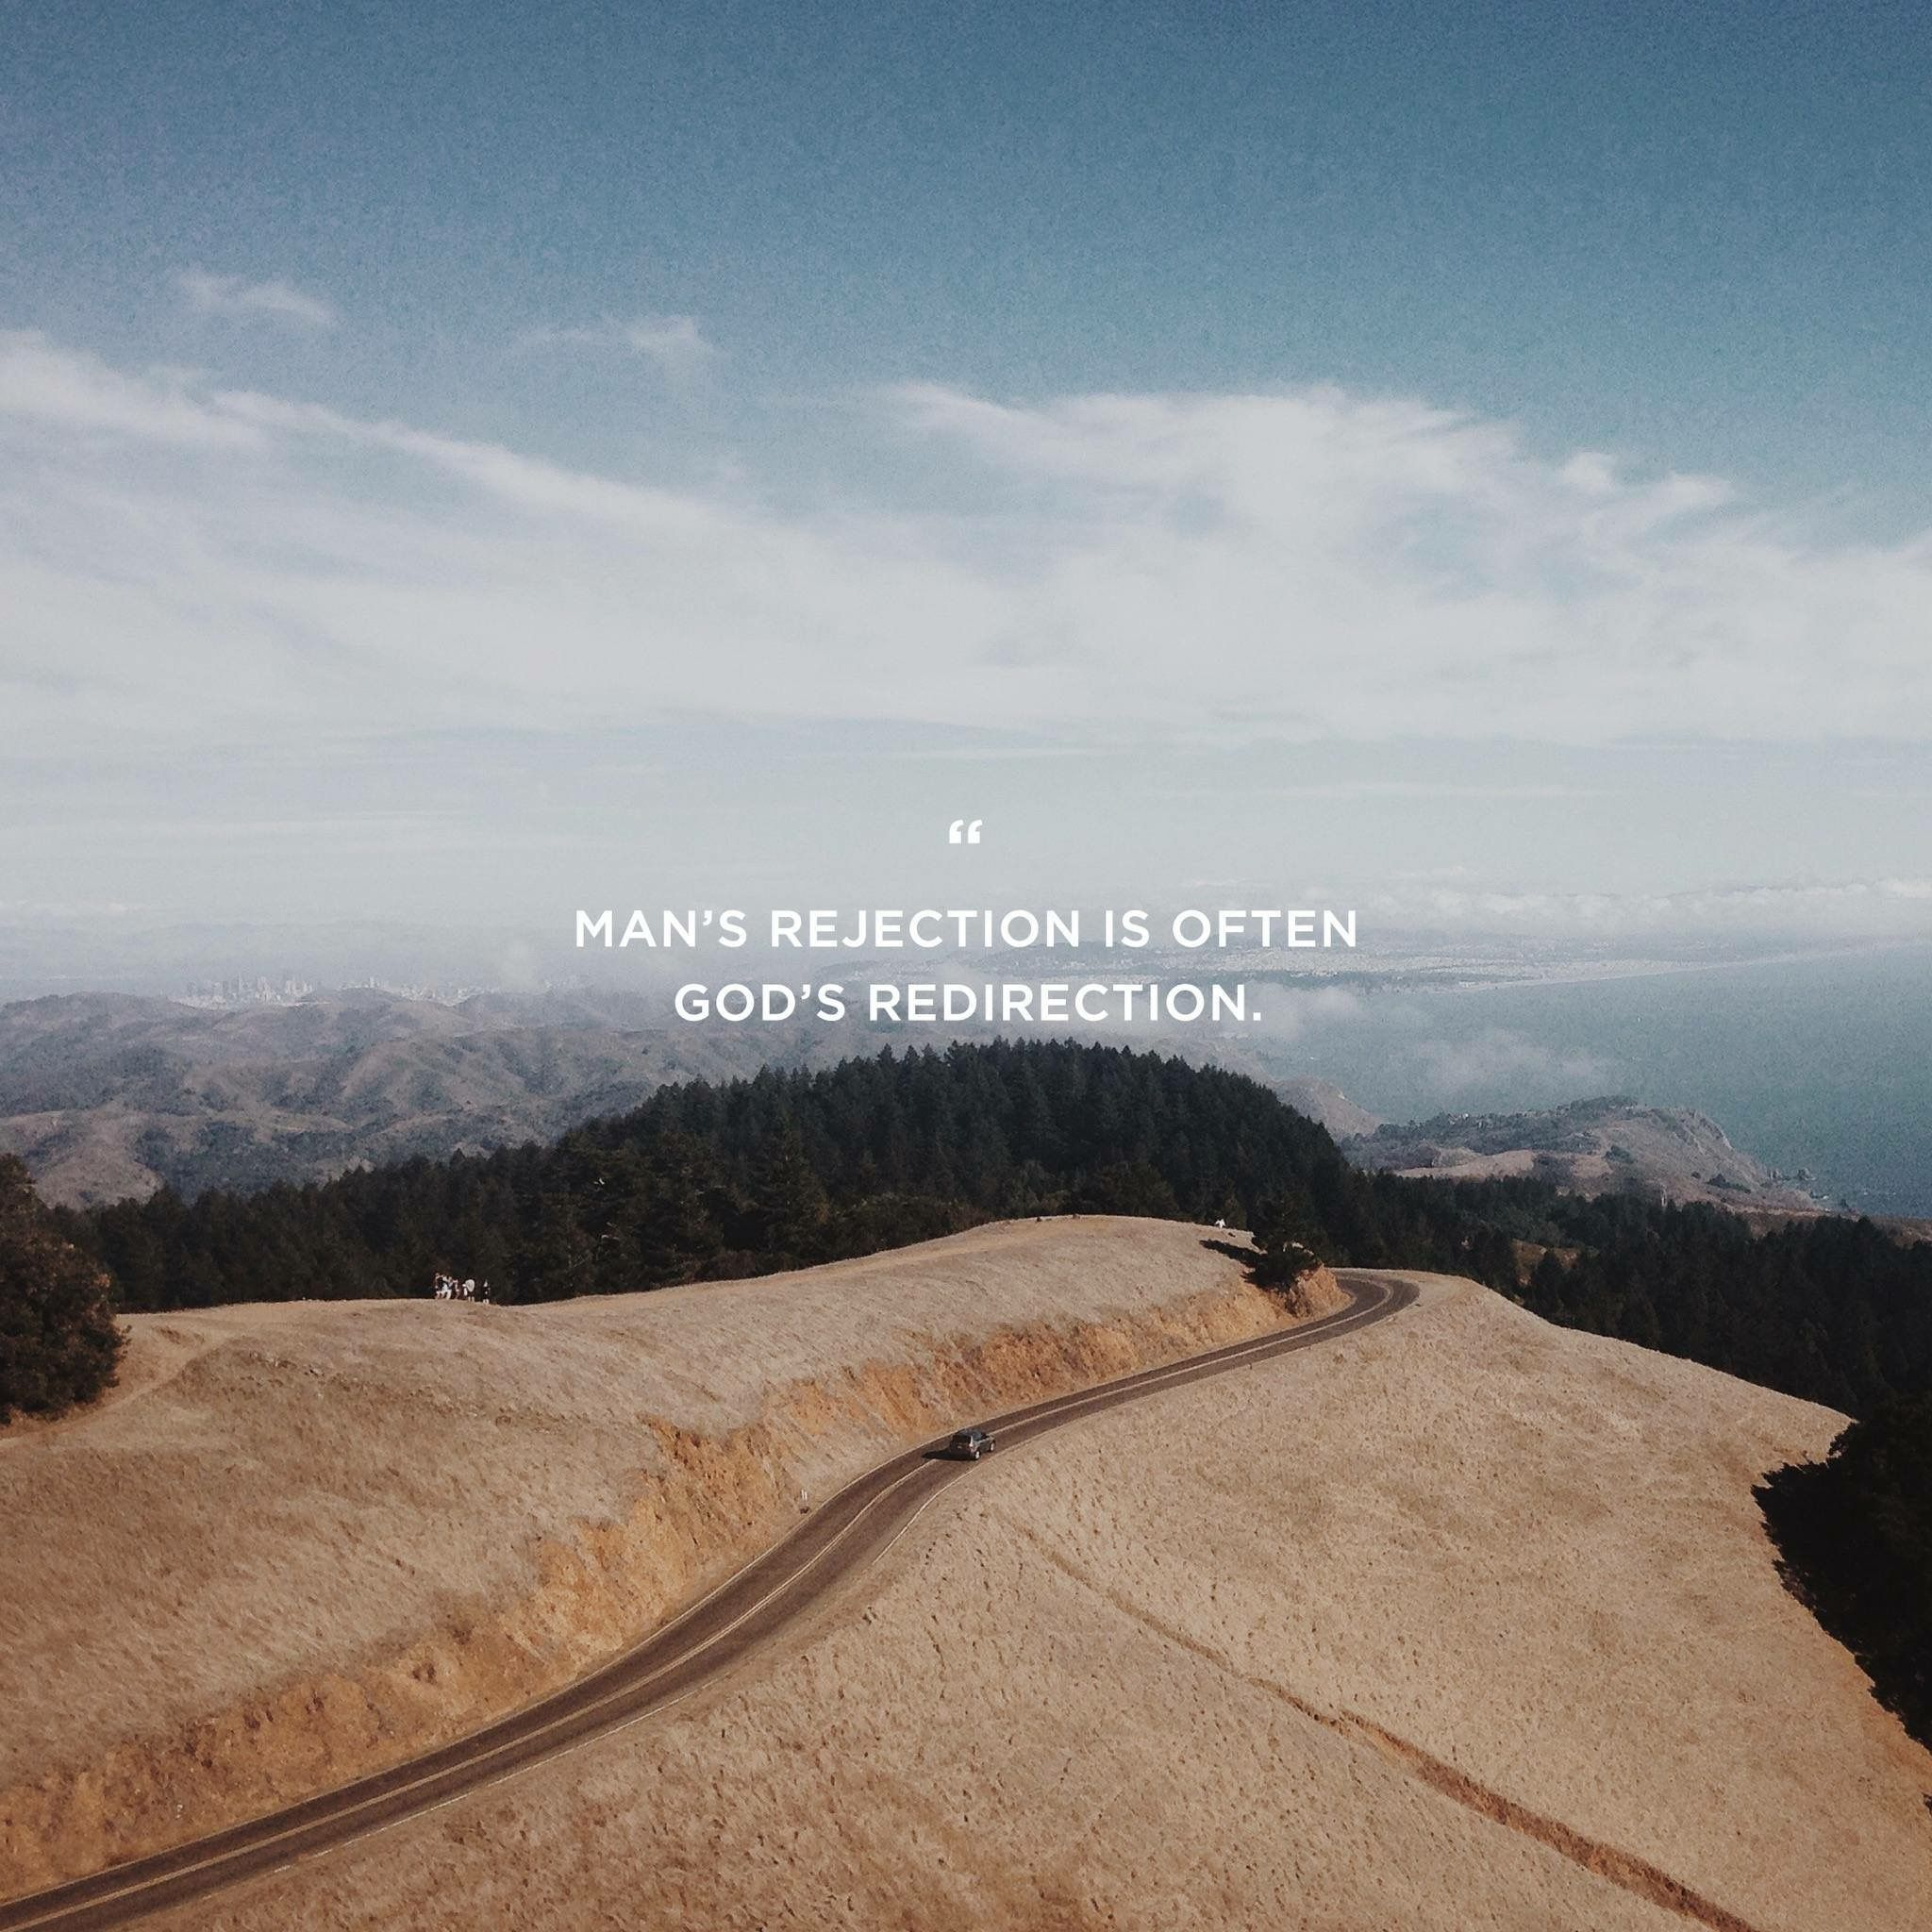 Mans rejection is often God's redirection